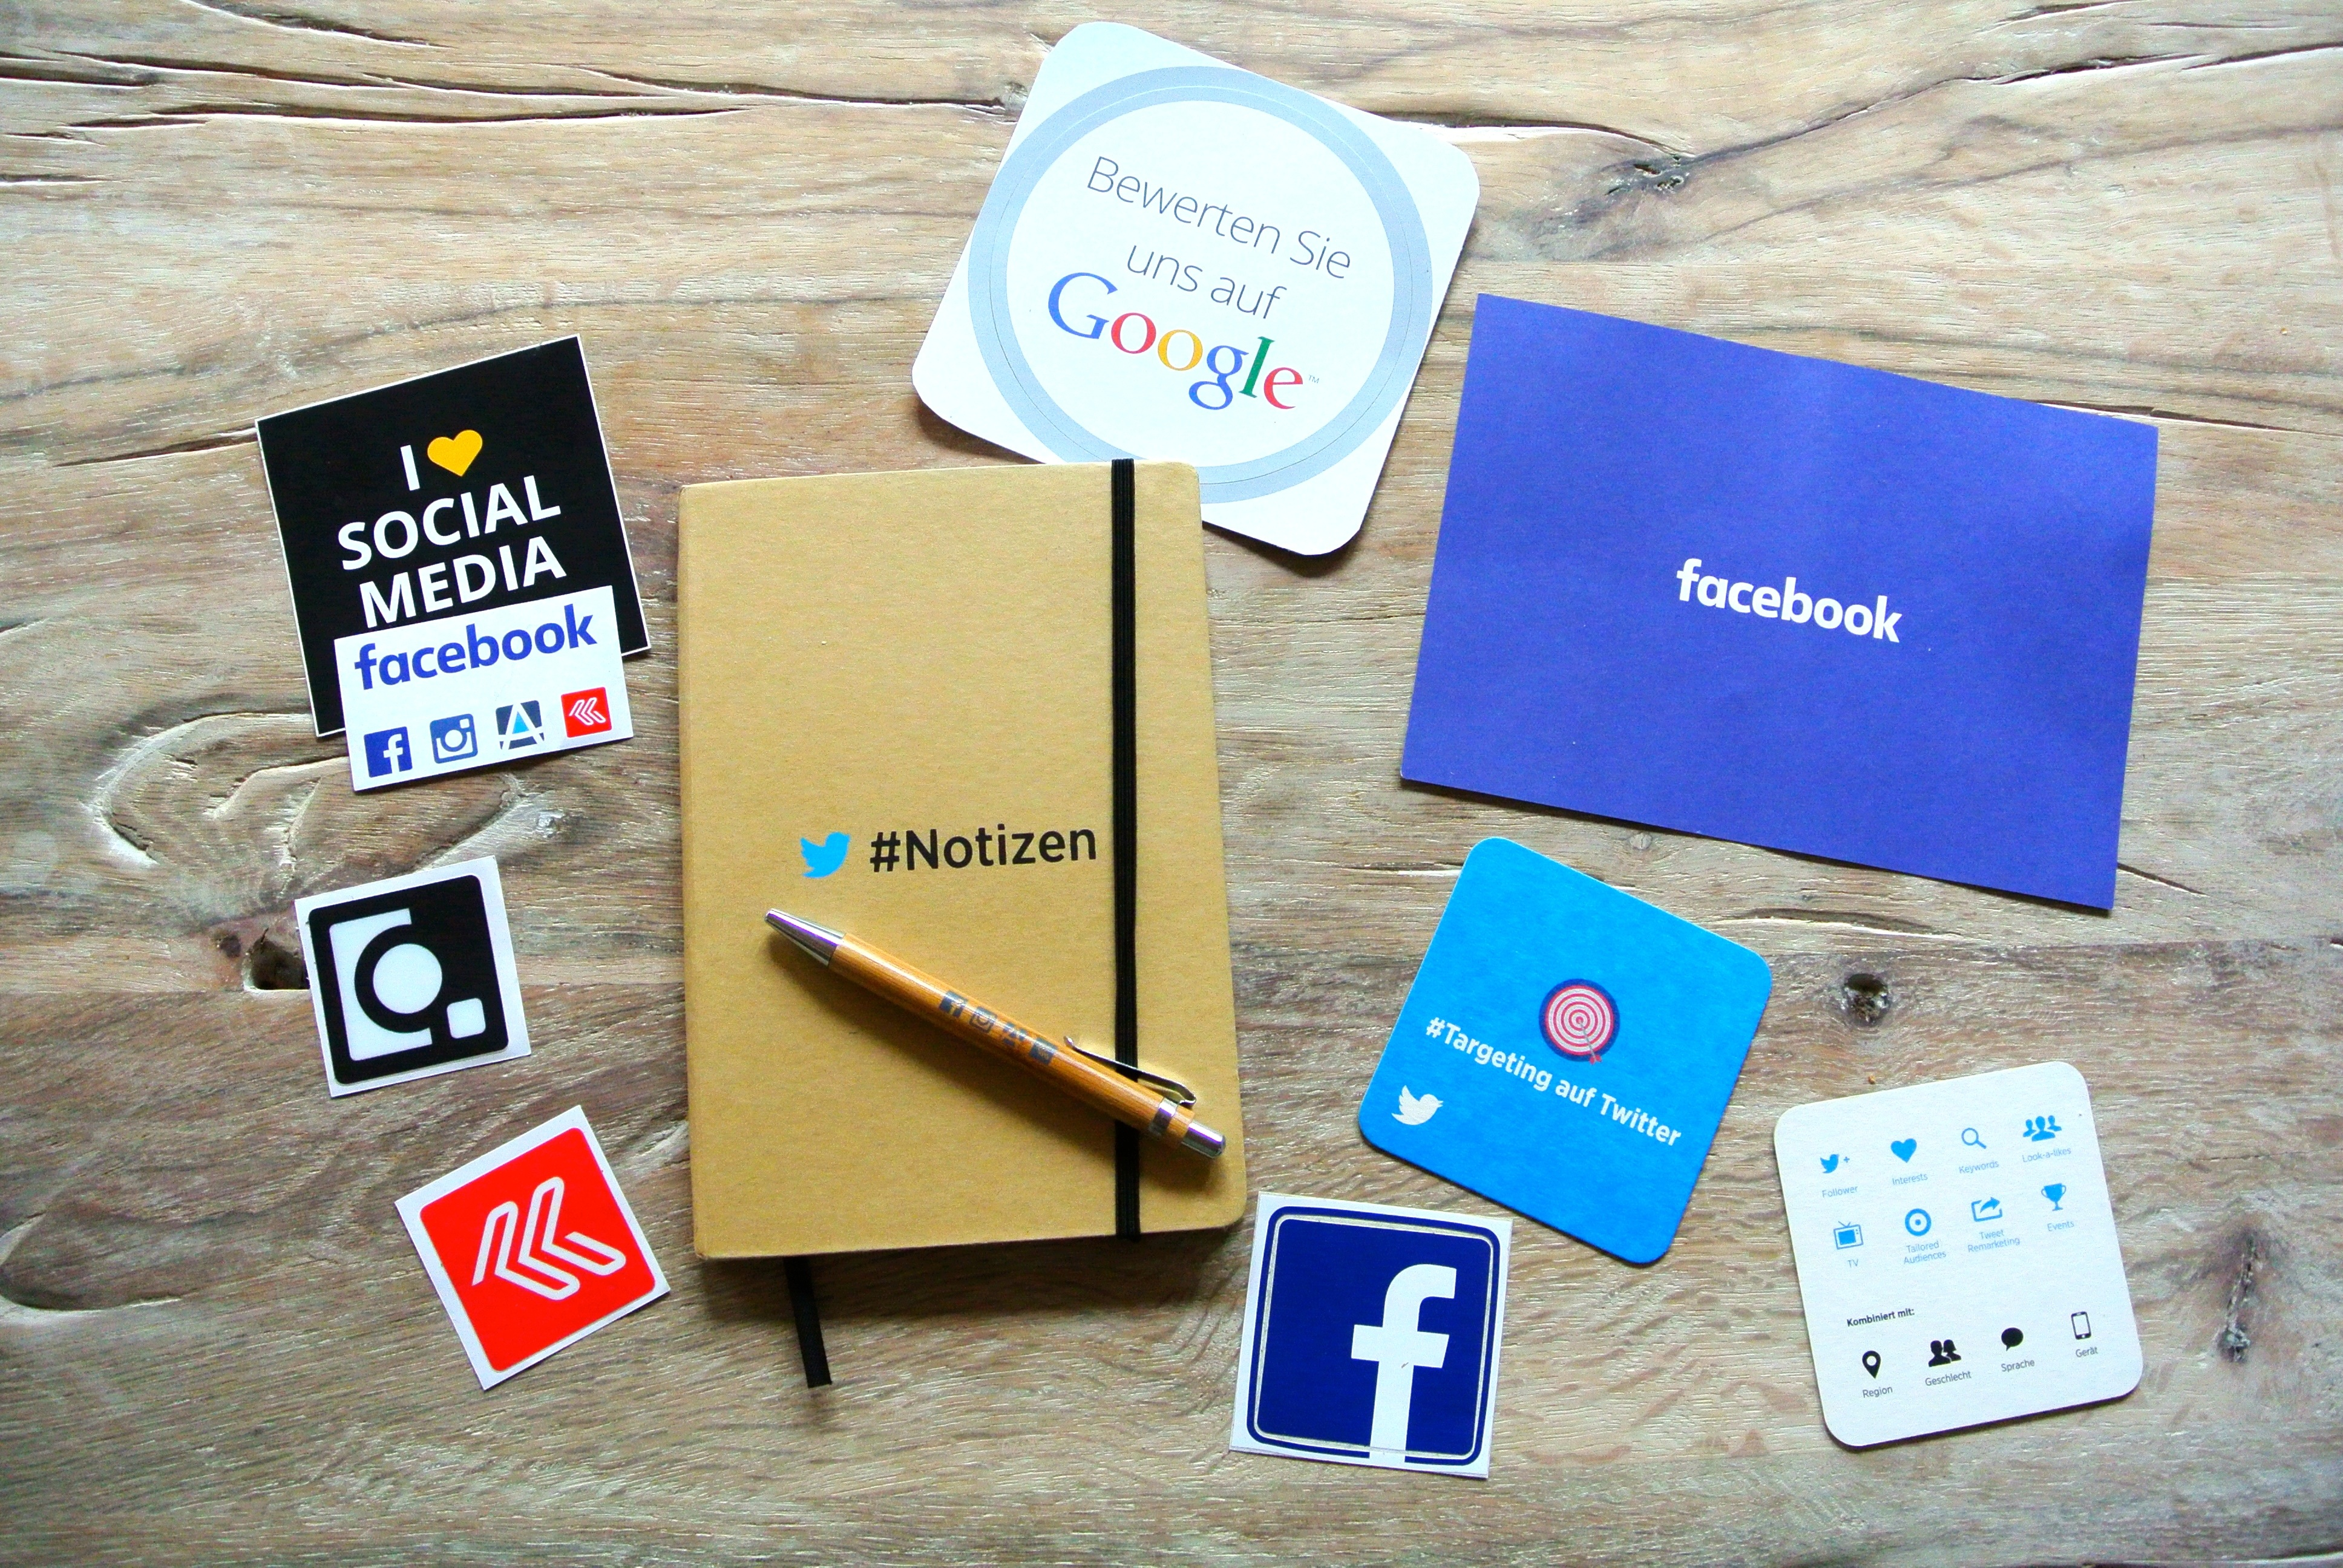 Social Media Tools to Improve Your Content